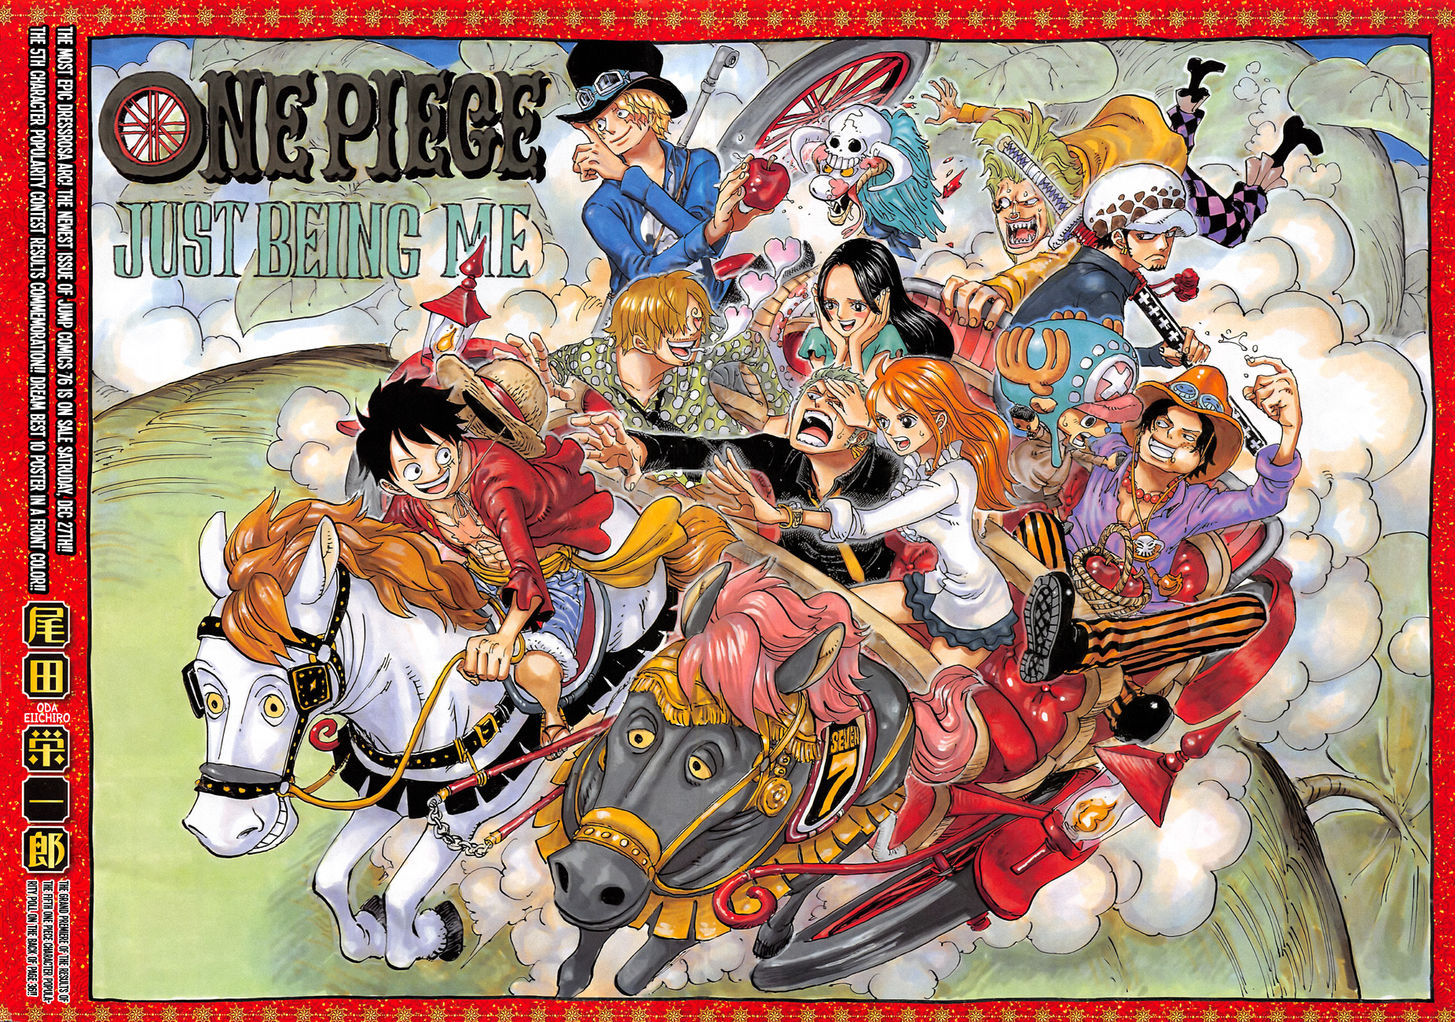 https://im.nineanime.com/comics/pic9/32/96/3120/OnePiece7710152.jpg Page 1